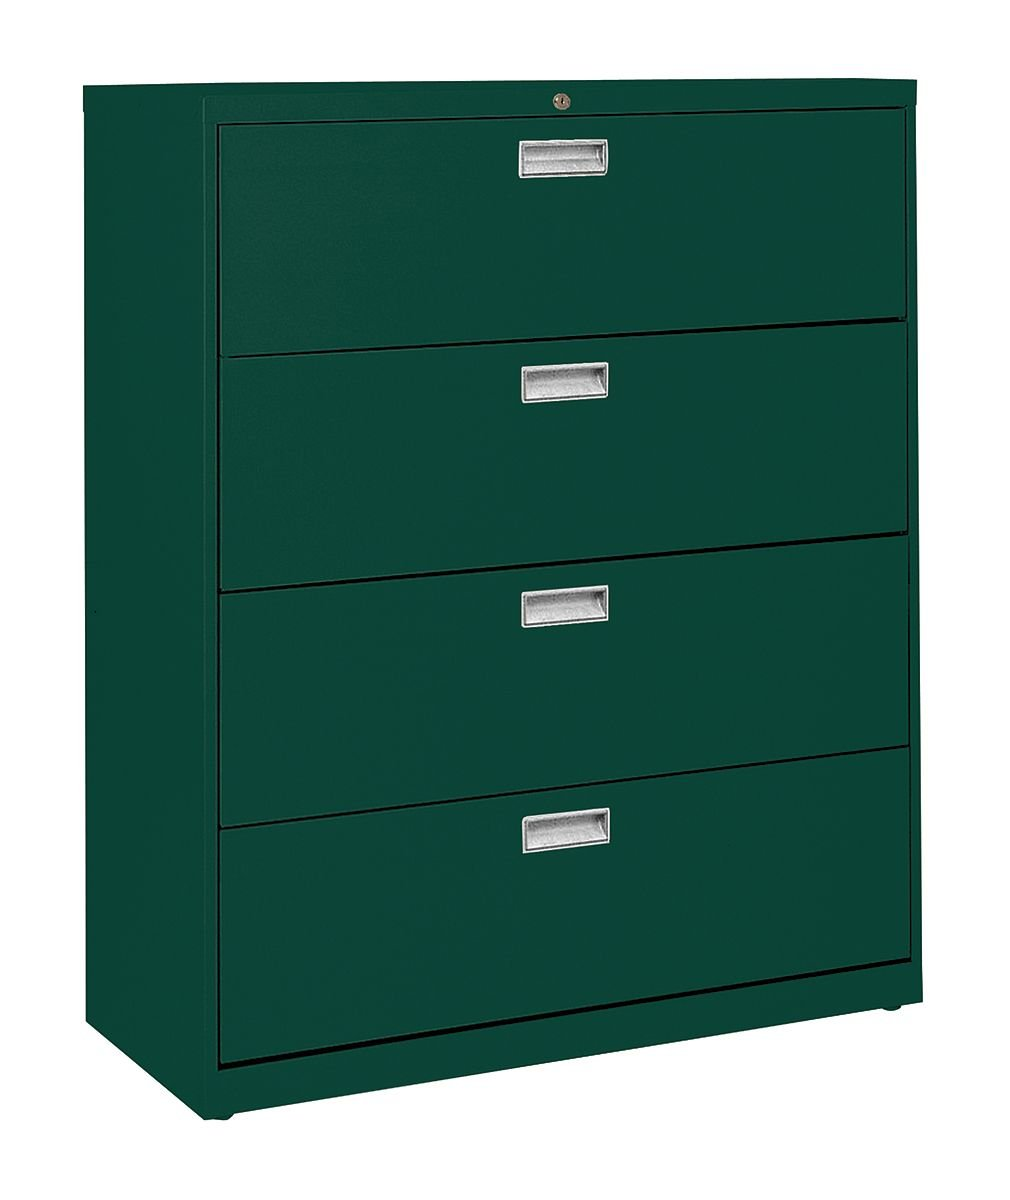 Green File Cabinet Amazoncom Sandusky Lee Lf6a424 09 600 Series 4 Drawer Lateral